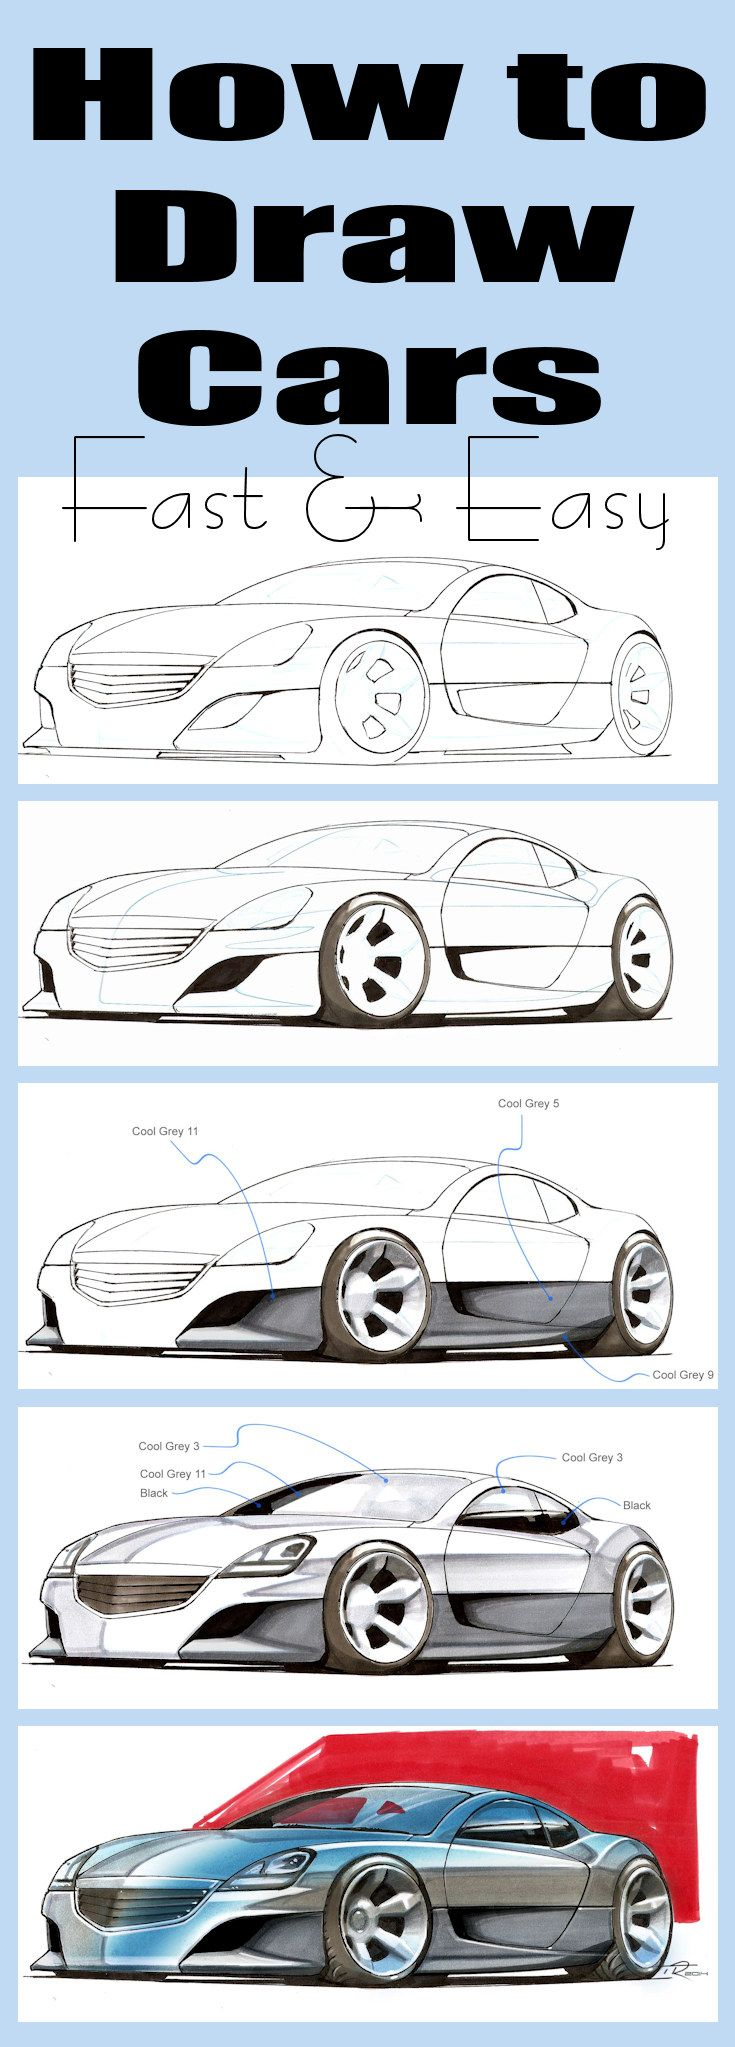 Learn To Draw Cars In 30 Minutes Ideal For Beginners How To Draw